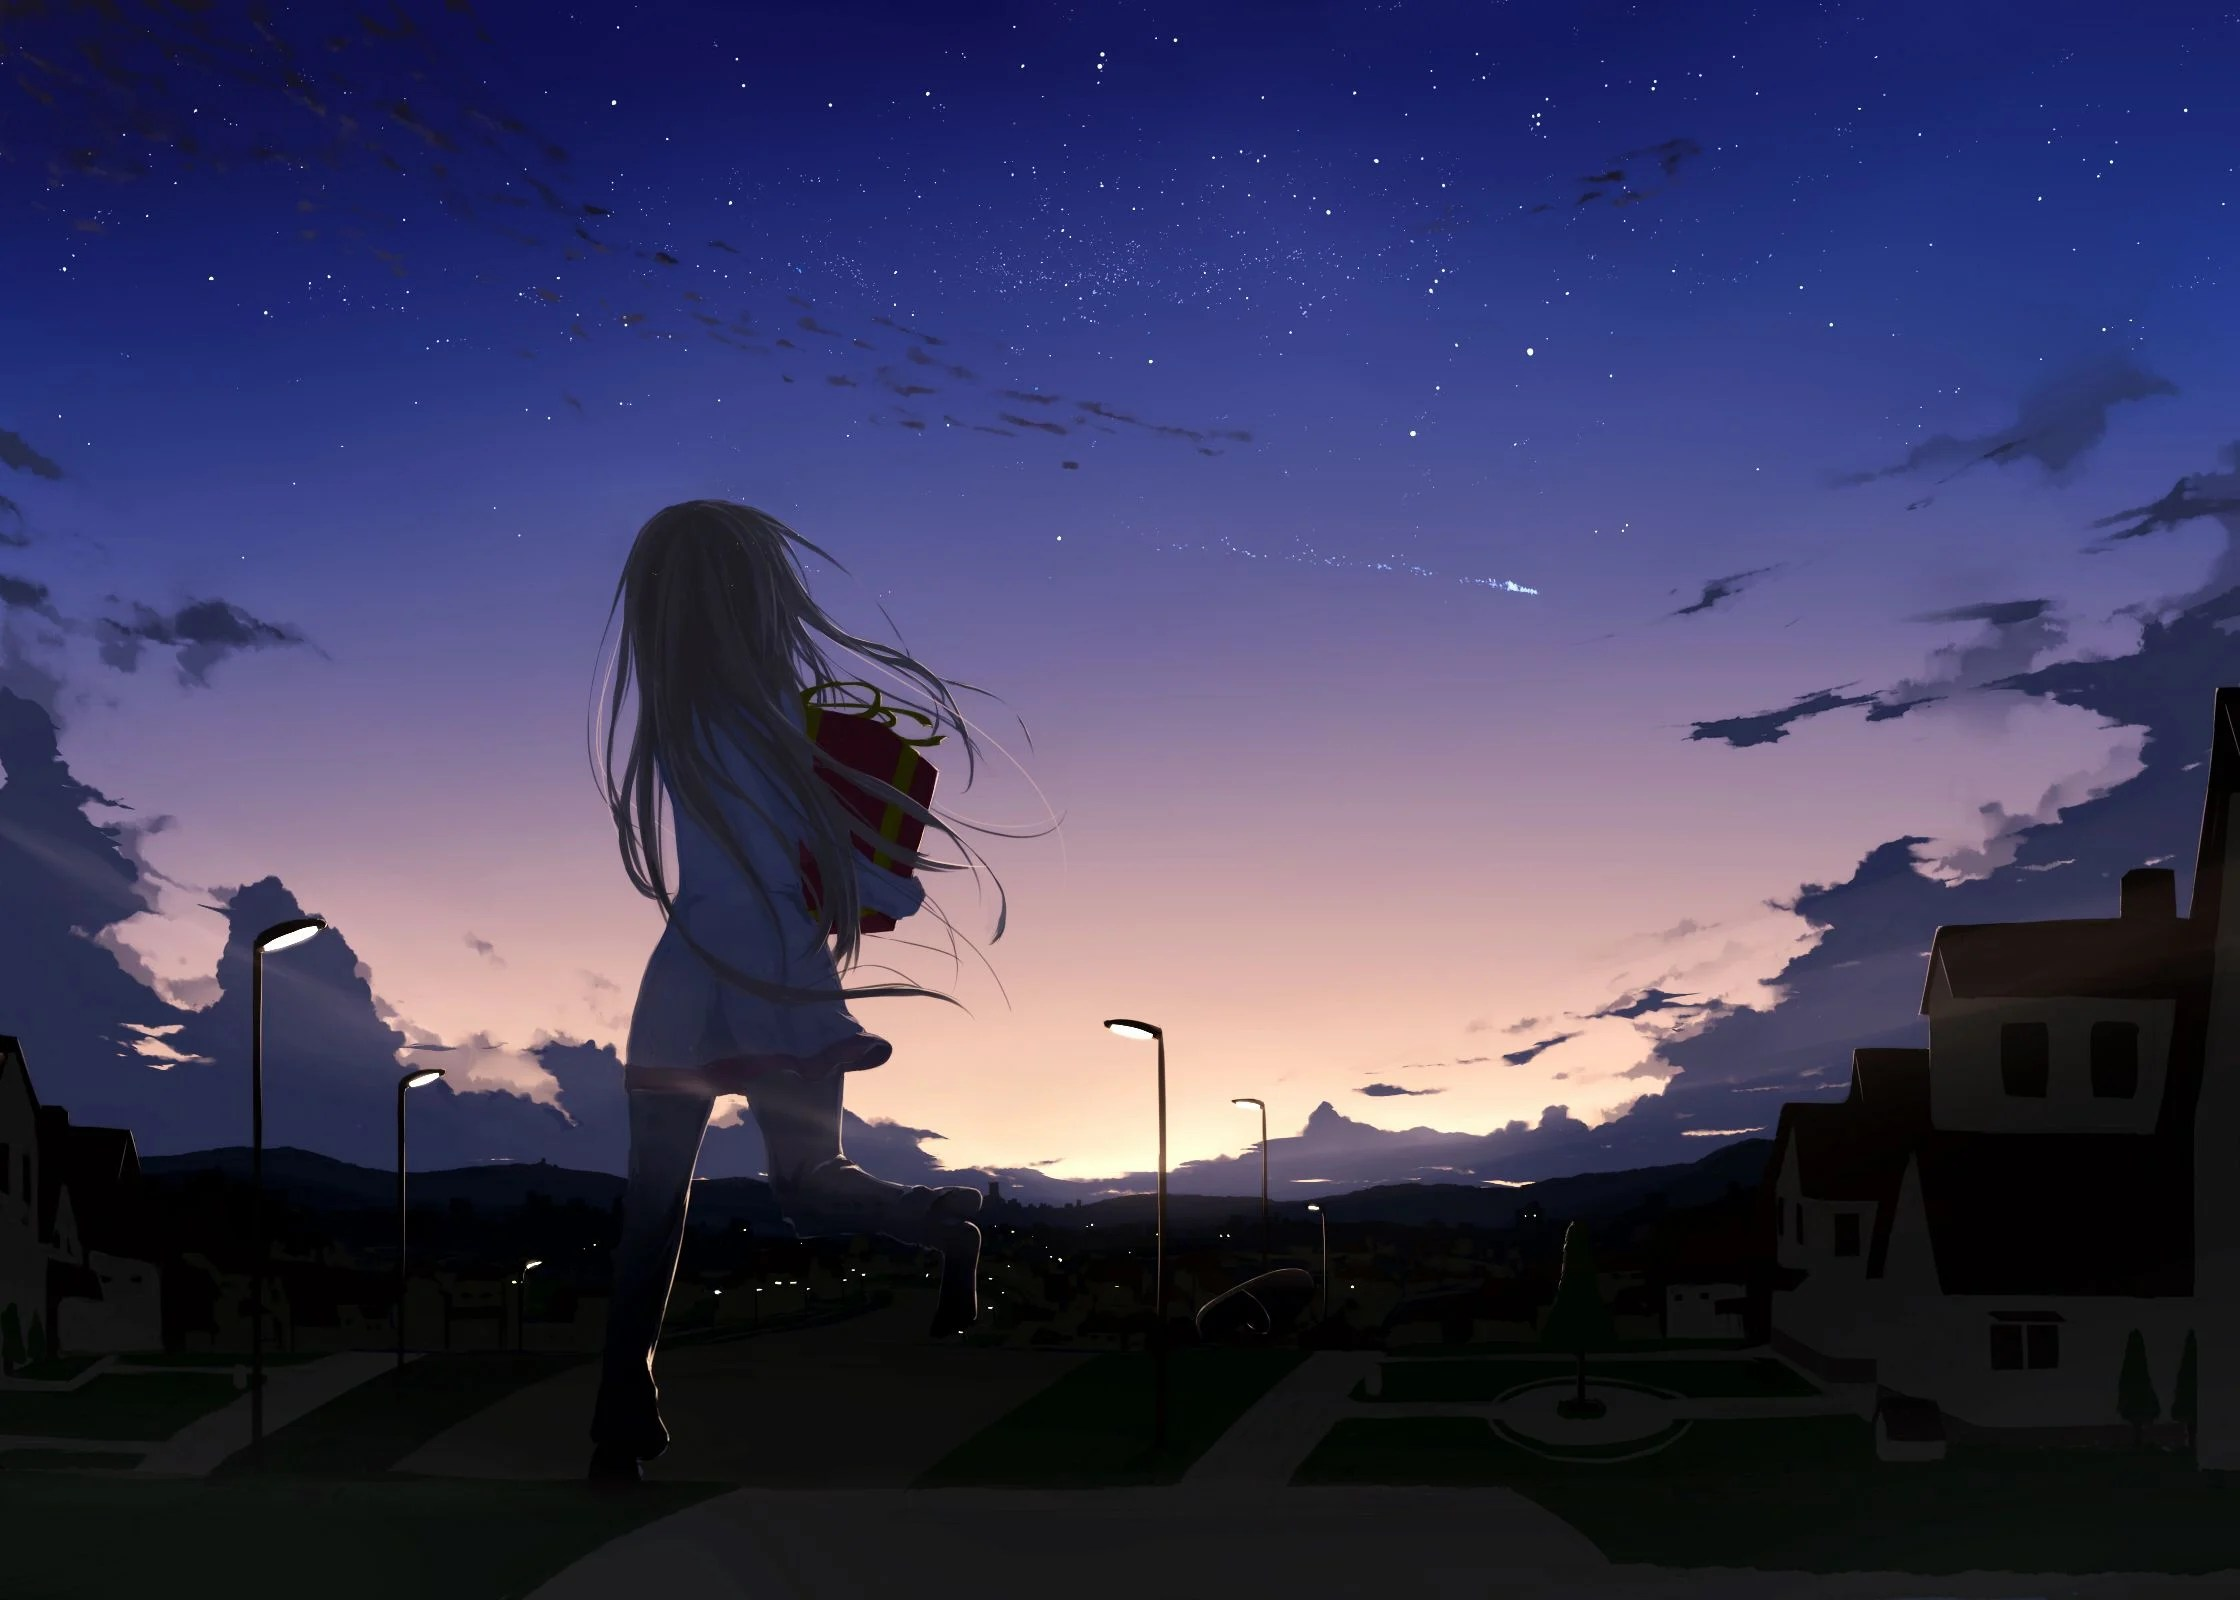 Wallpaper Engine Girl Falling Music Anime Night Wallpapers Top Free Anime Night Backgrounds